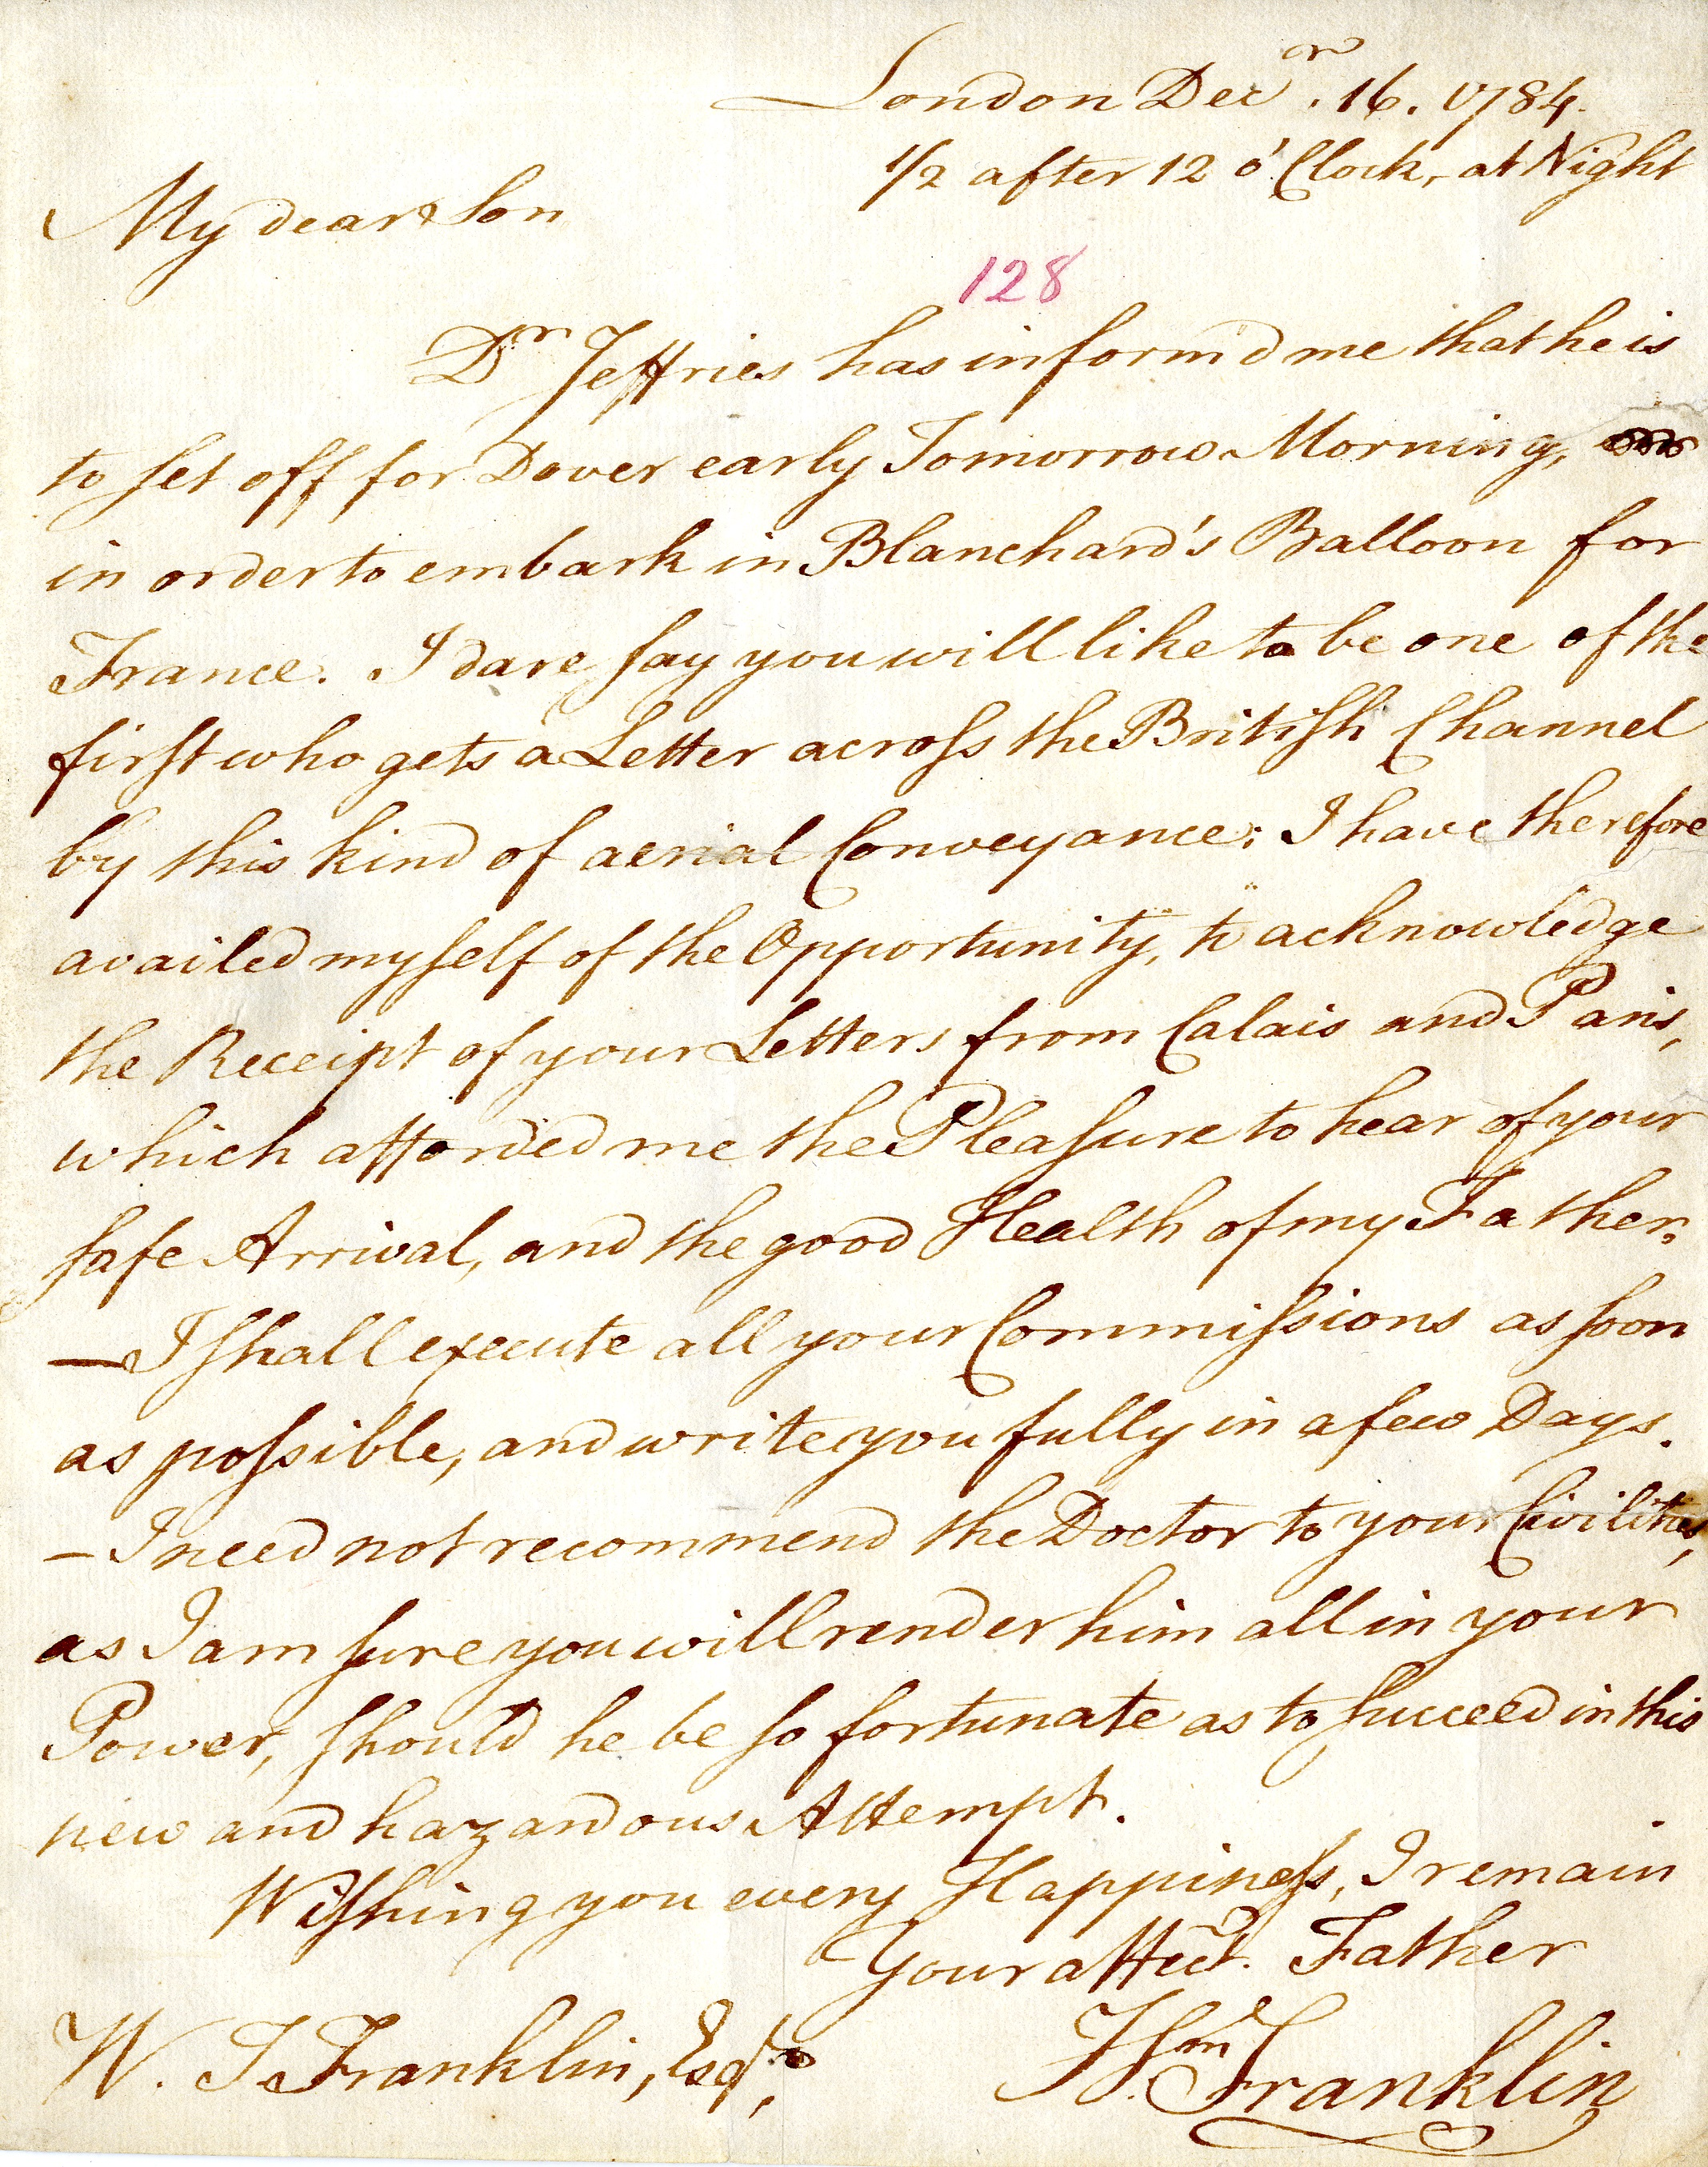 18th century letter